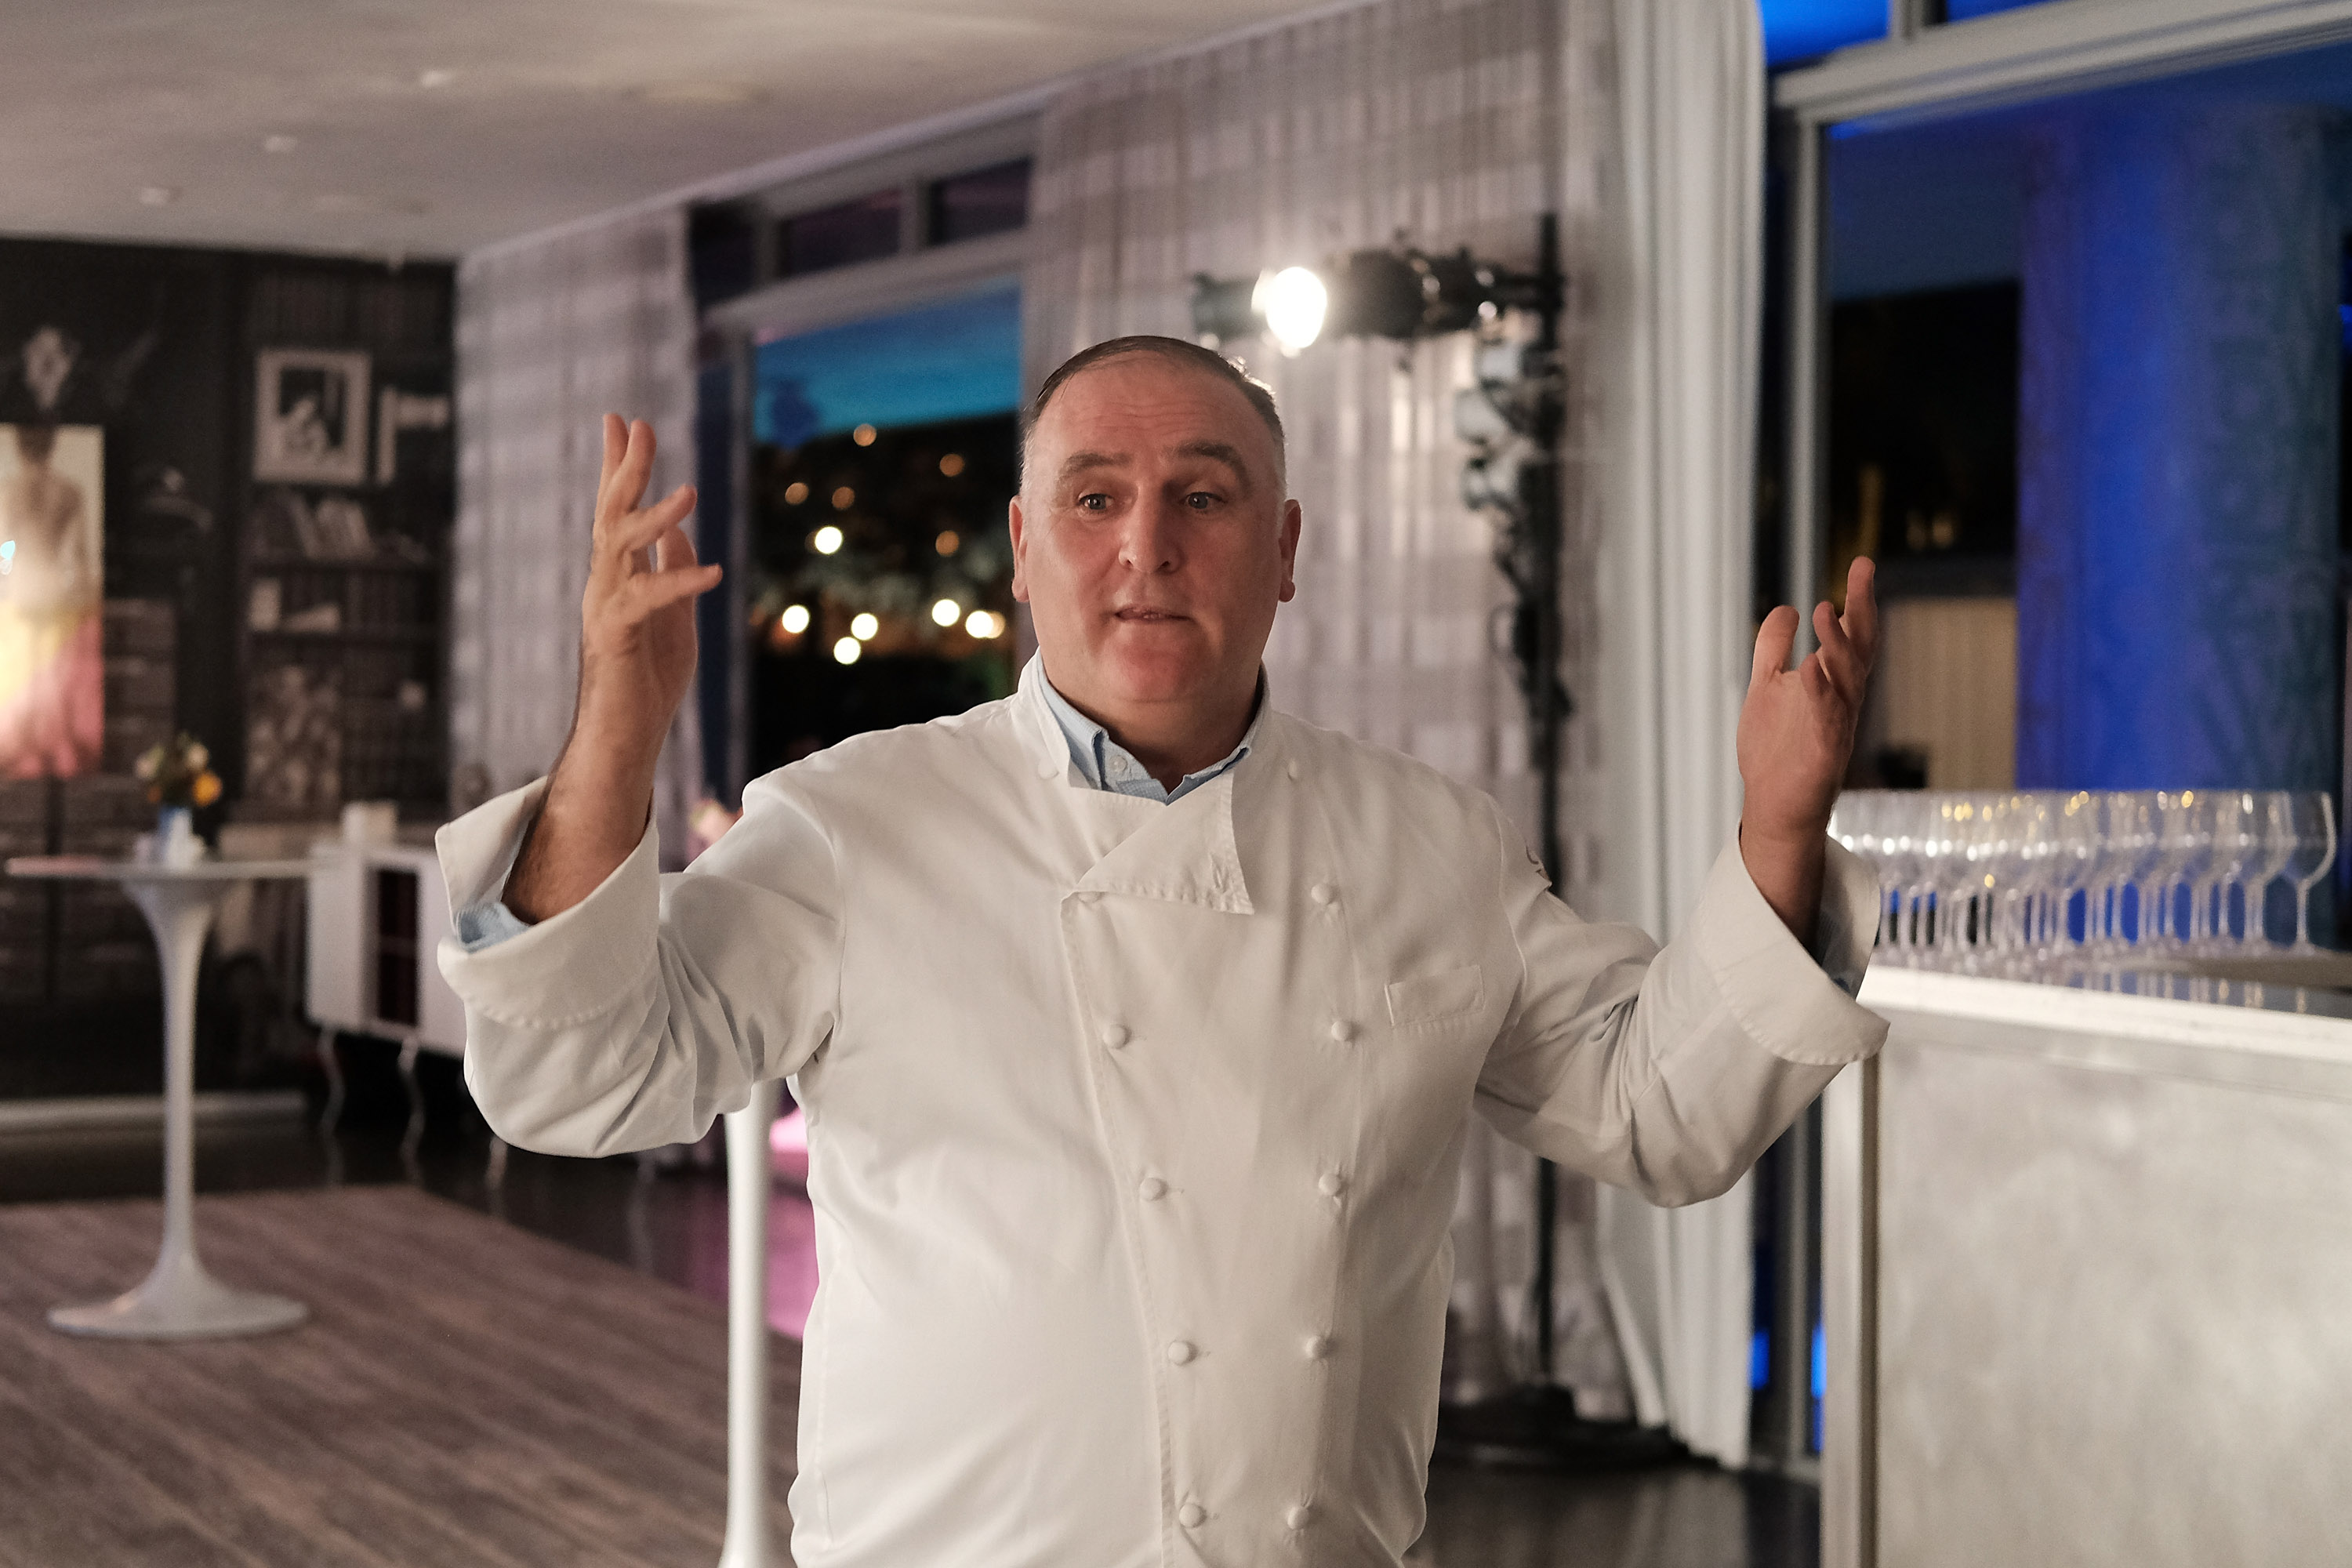 FOOD MEETS ART, Hosted By Jose Andres For American Express Platinum Card Members At The SLS South Beach Hotel